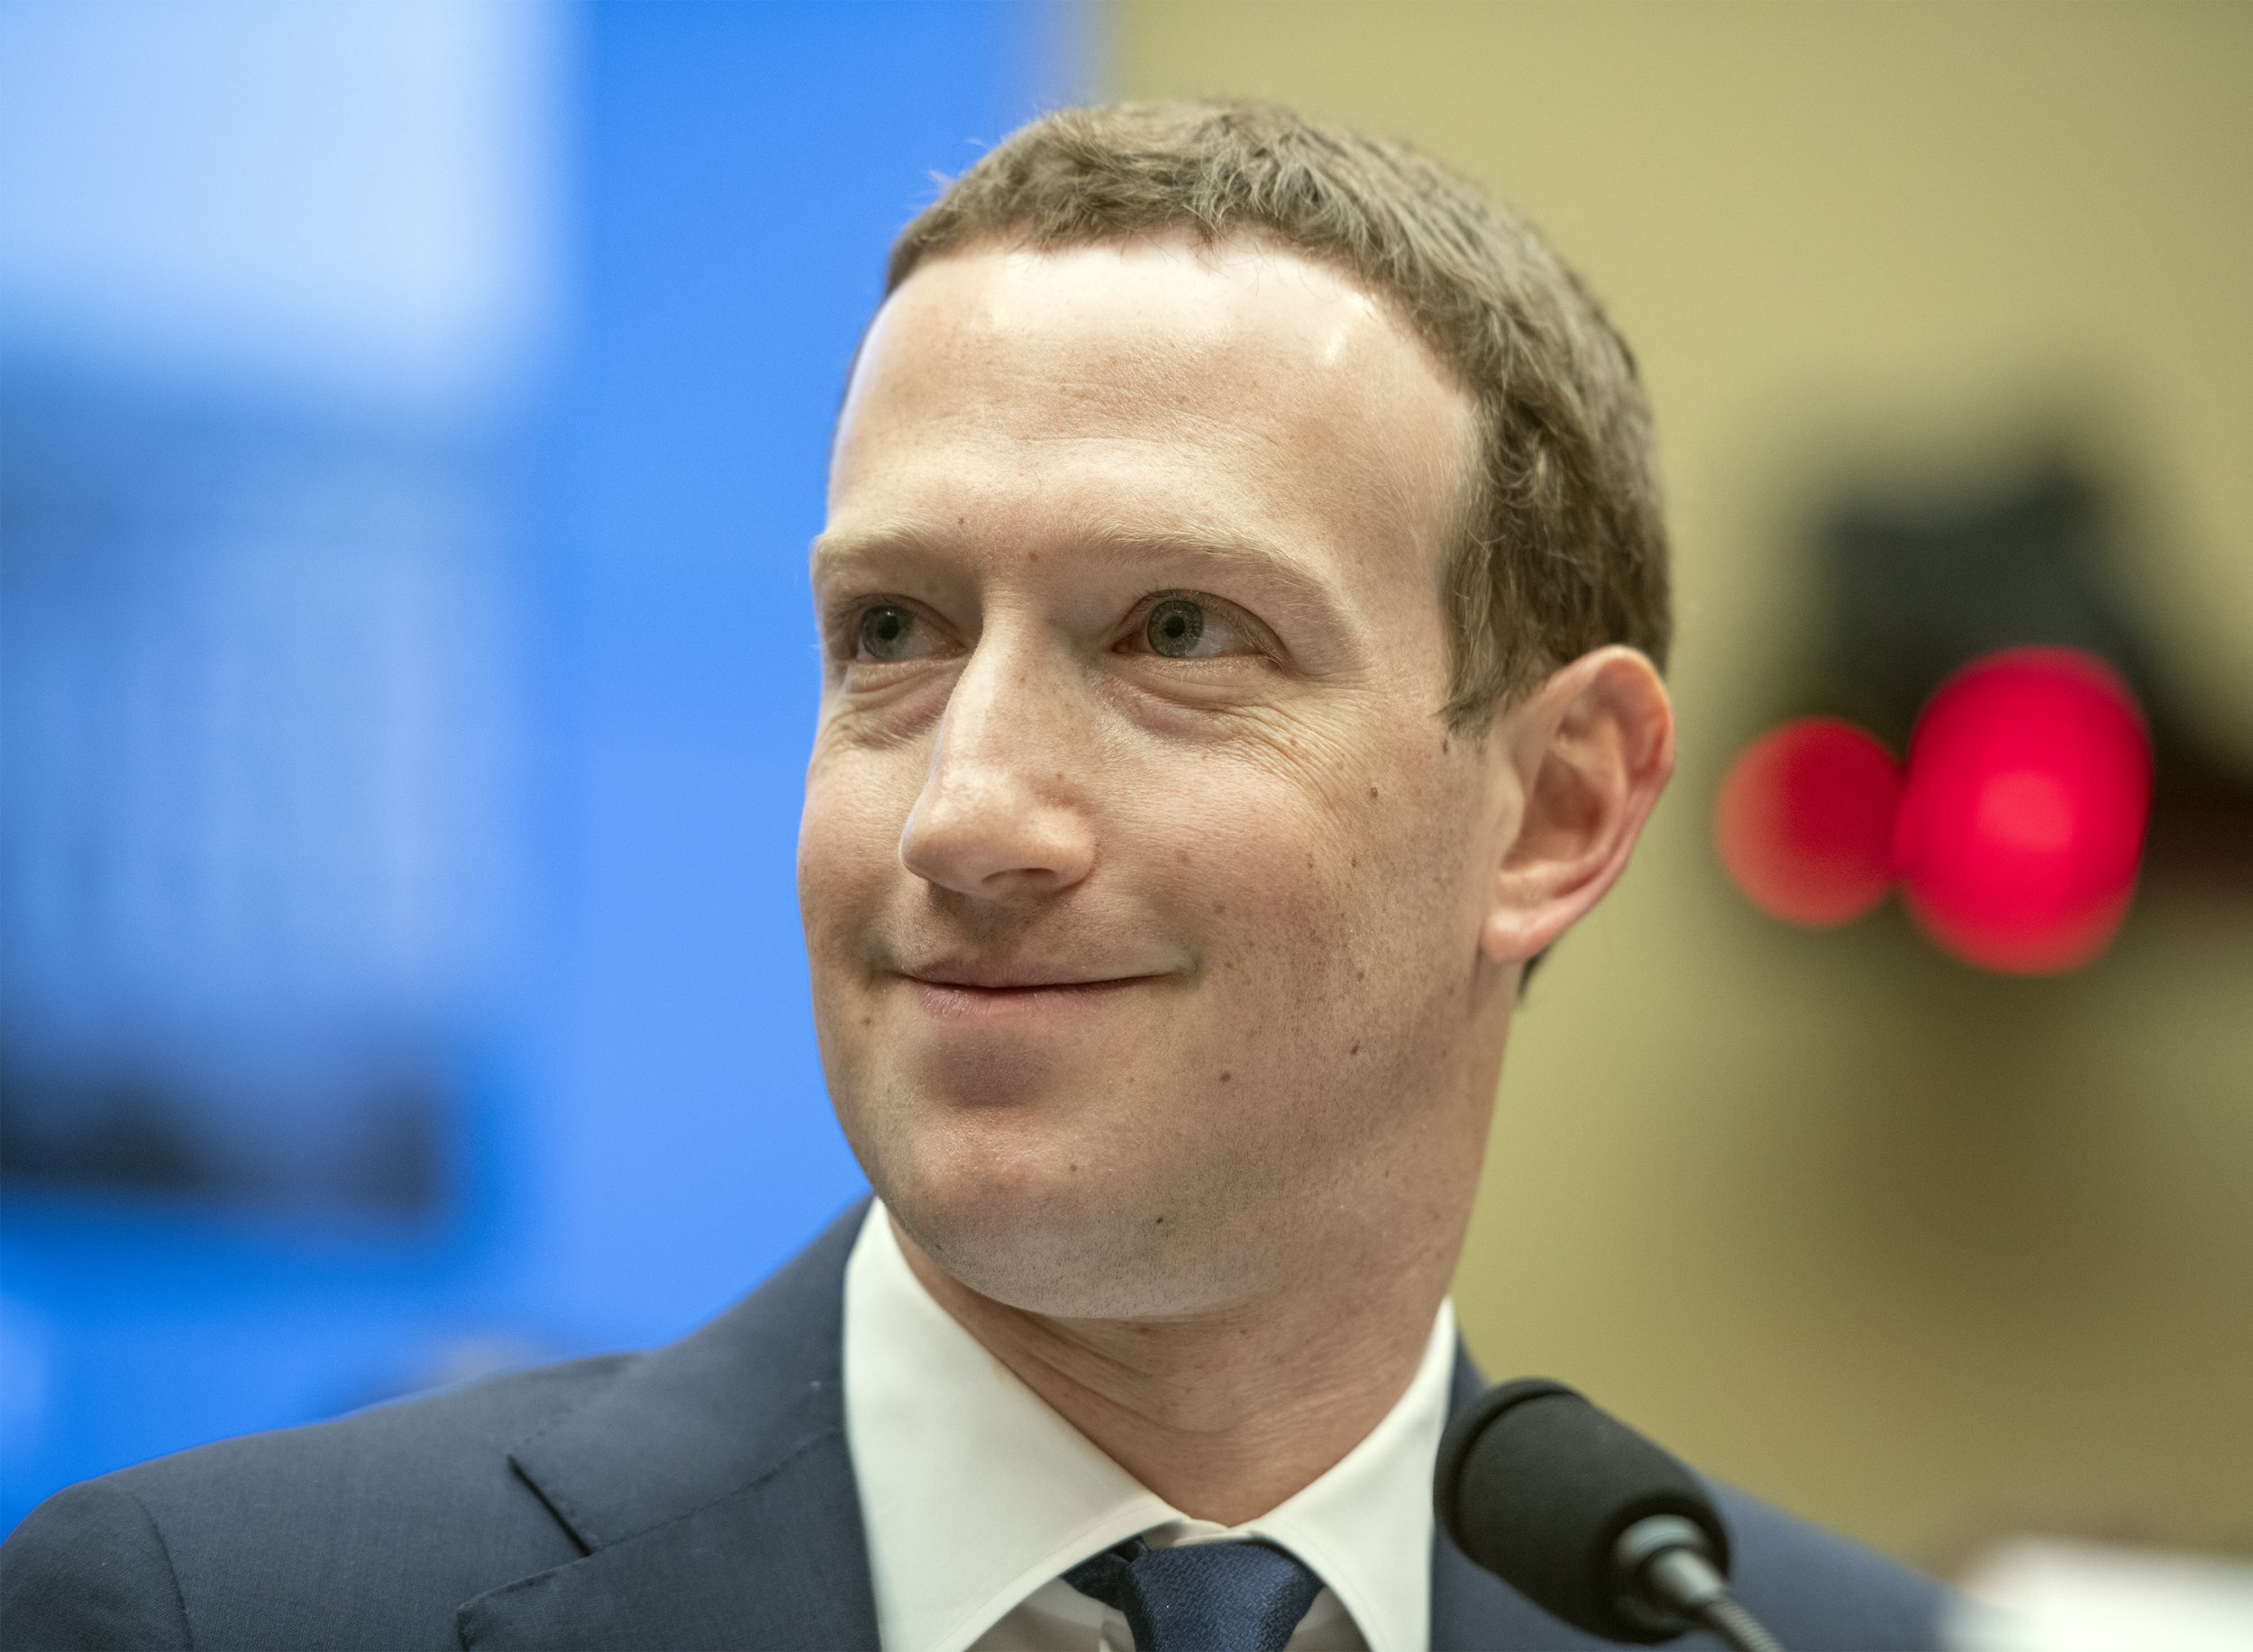 """Mark Zuckerberg, Co-Founder and CEO of Facebook, testifies before a meeting of the United States House Committee on Energy and Commerce during a hearing on """"Facebook: Transparency and Use of Consumer Data,"""" on Capitol Hill in Washington, DC on Wednesday, April 11, 2018. Credit: Ron Sachs / CNP (RESTRICTION: NO New York or New Jersey Newspapers or newspapers within a 75 mile radius of New York City) -NO WIRE SERVICE- Photo: Ron Sachs/Consolidated/dpa"""